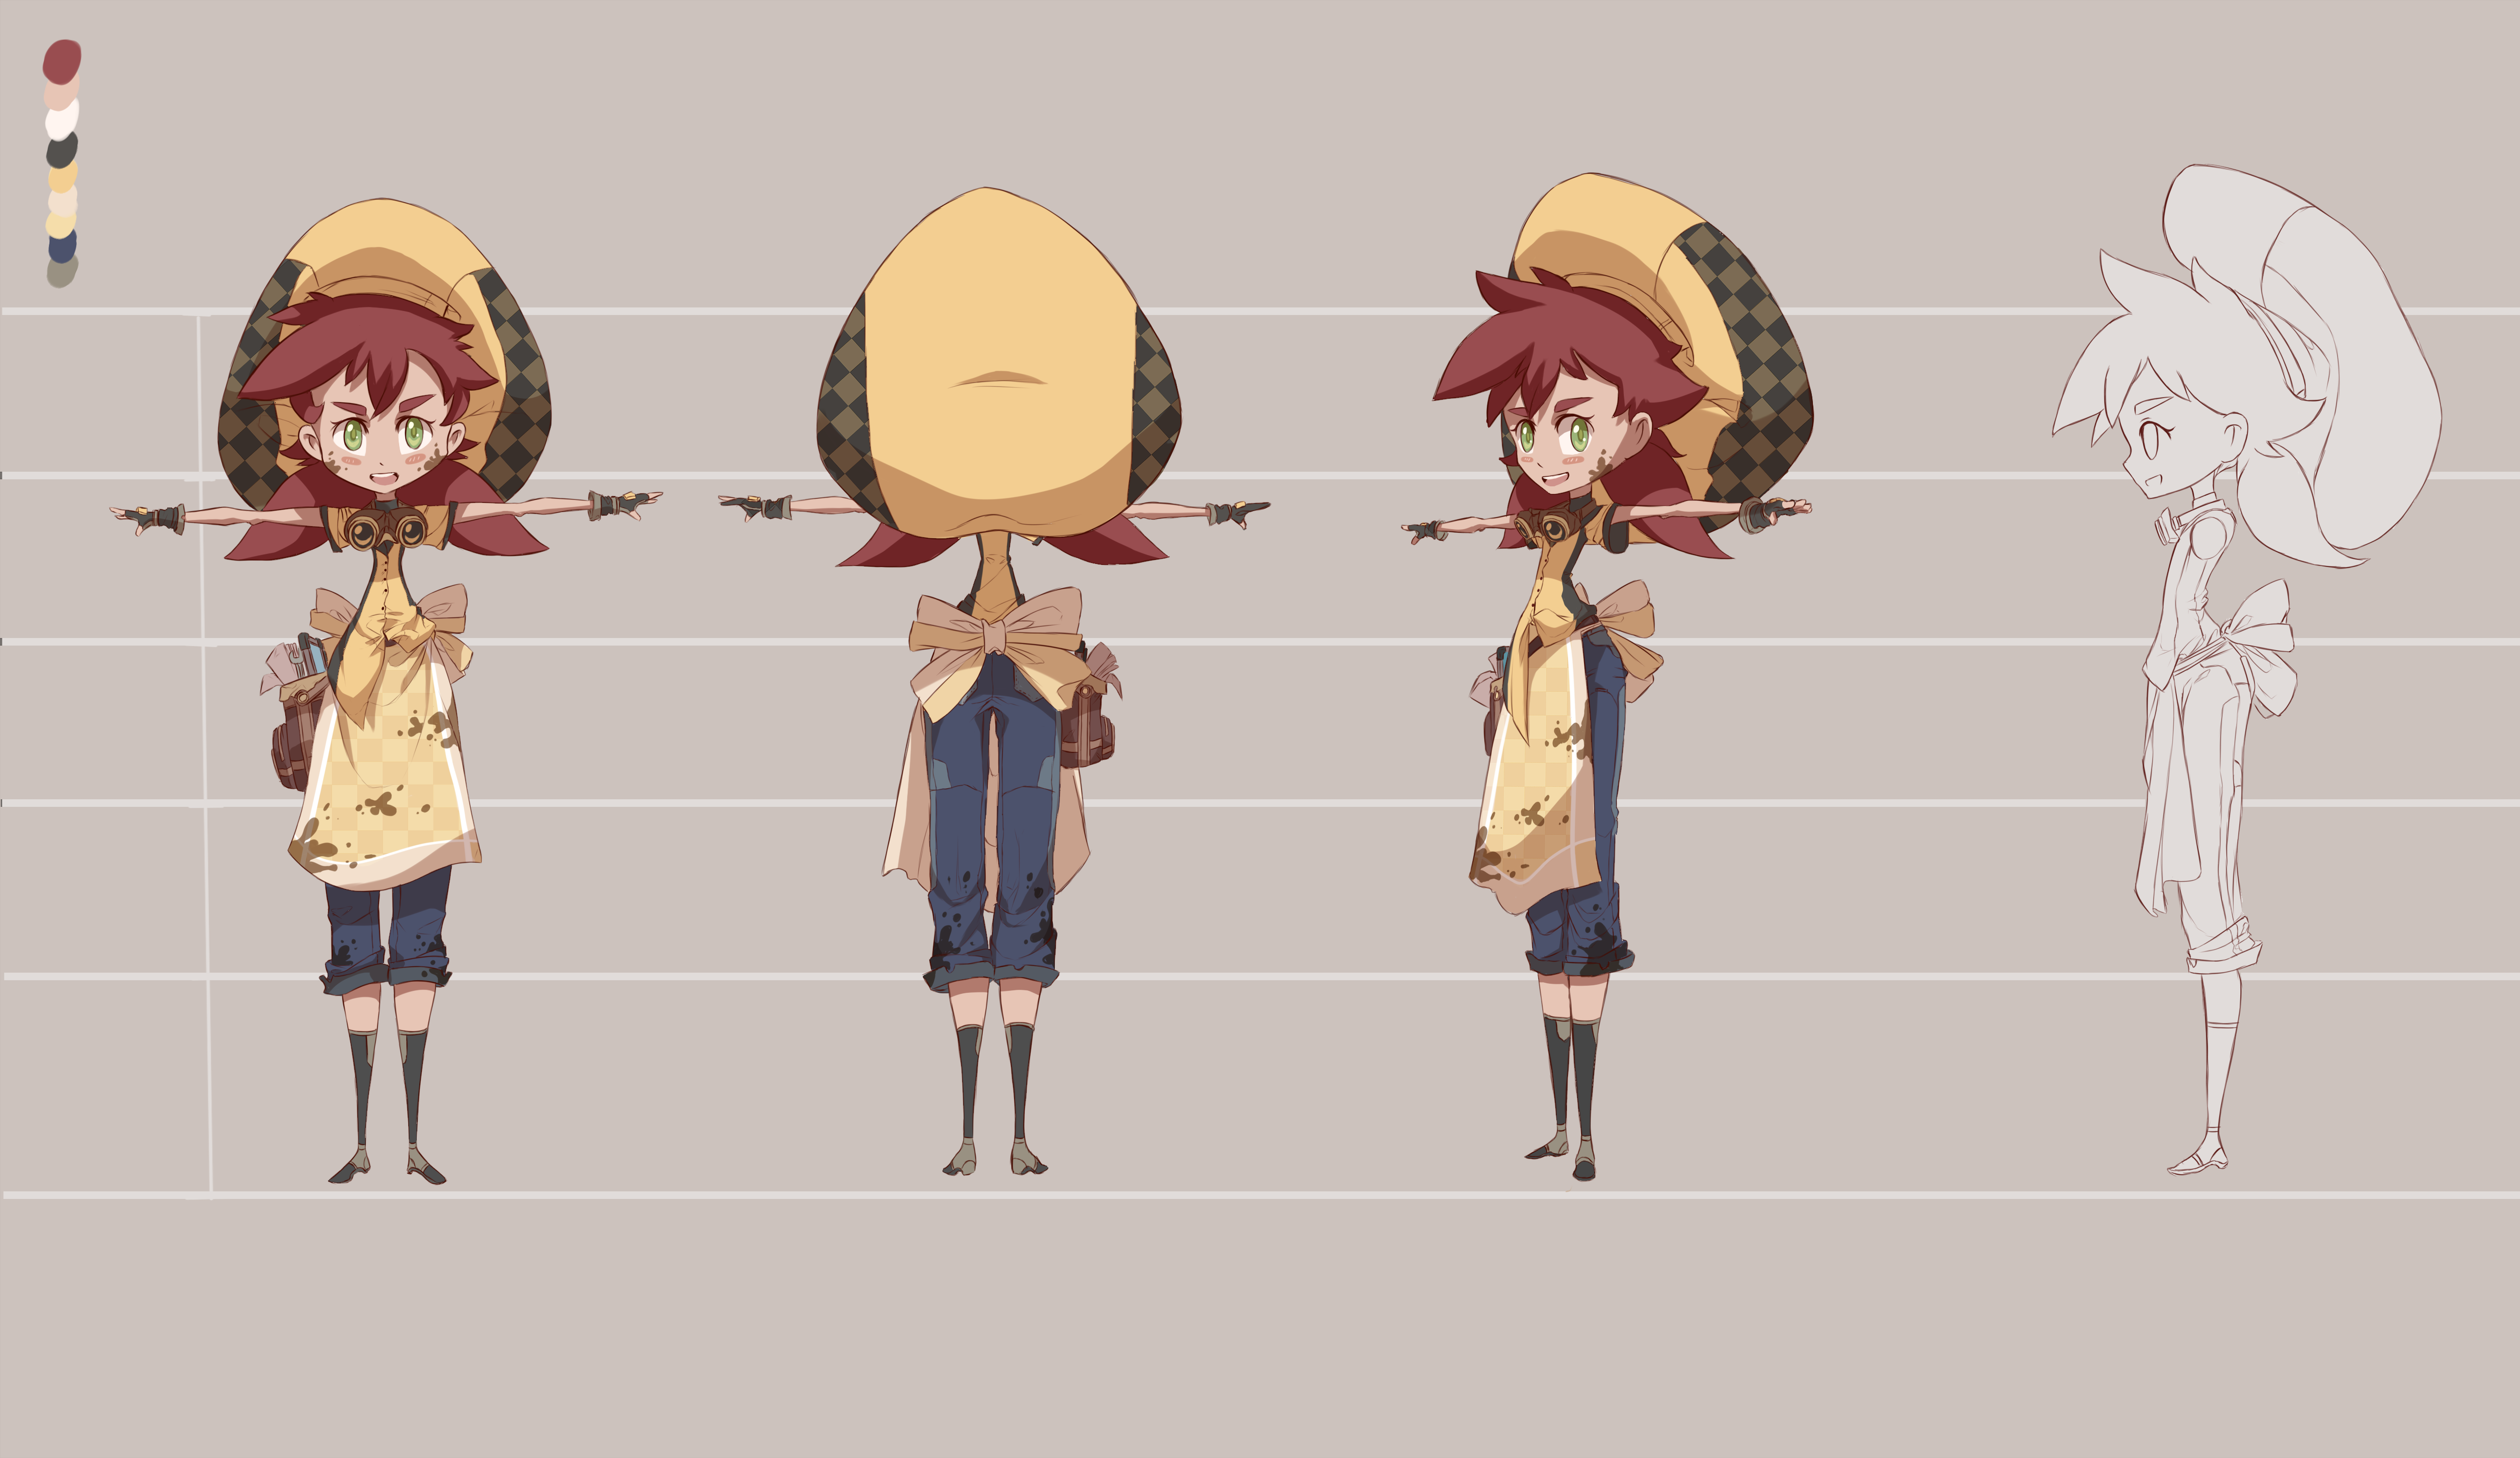 Character Design Courses University : University work character design marie by